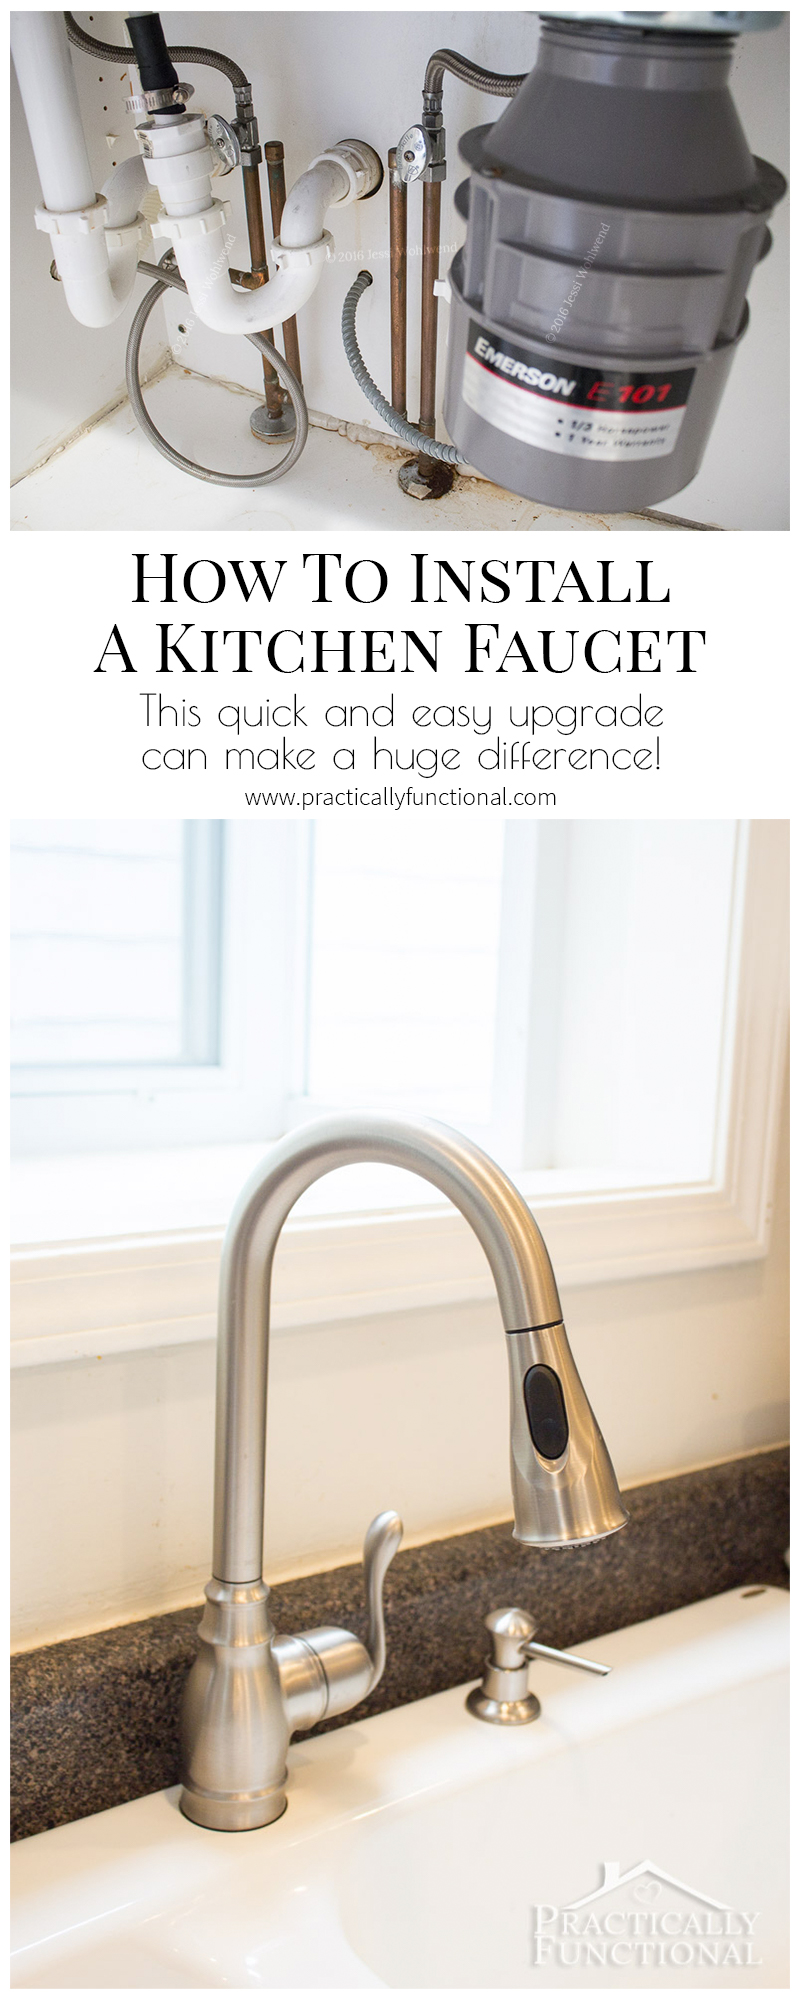 Learn how to install a kitchen faucet in under an hour!